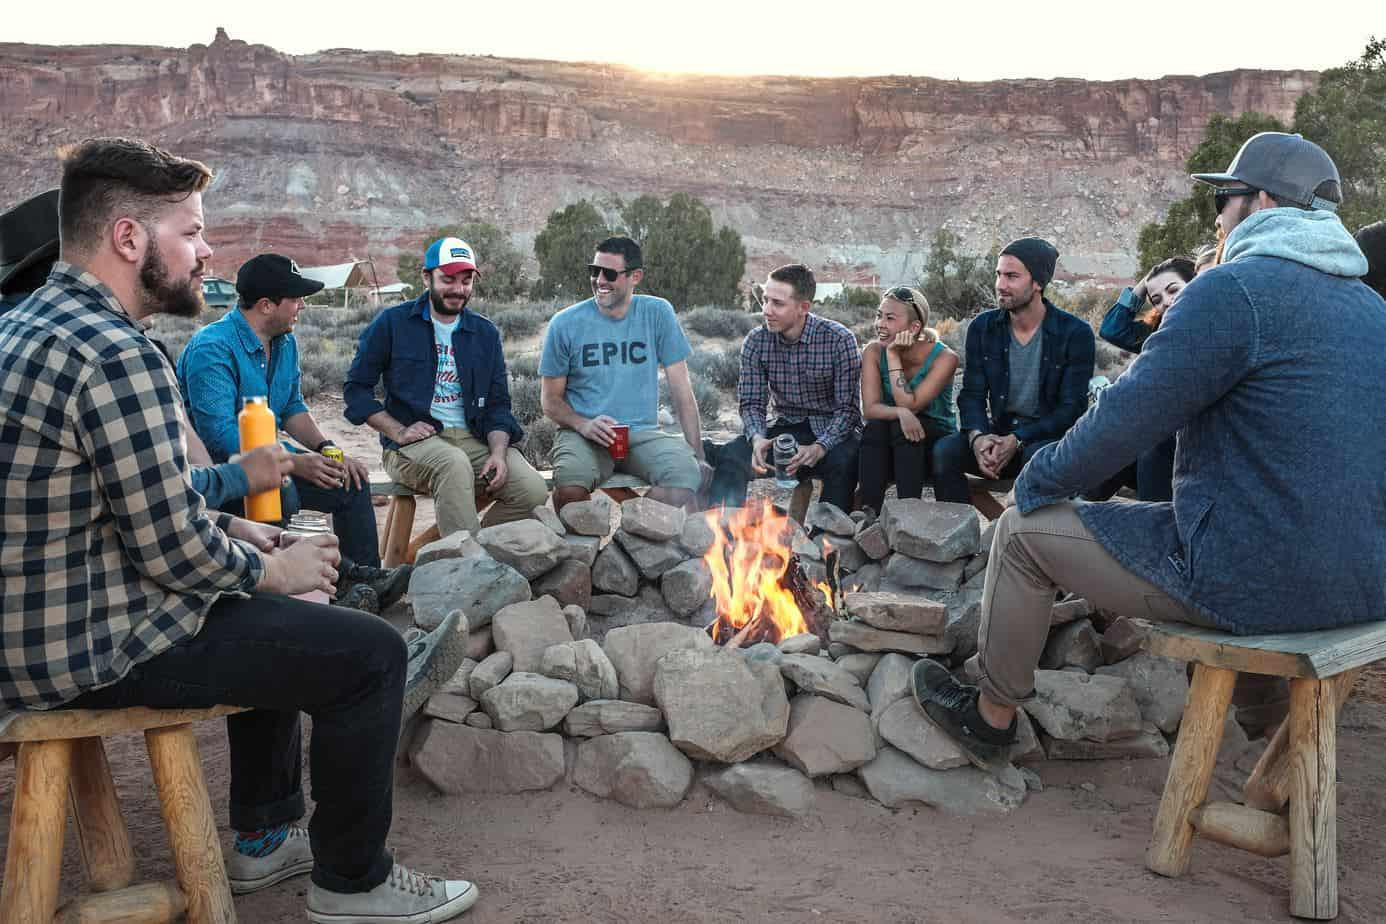 Campfire reunion with friends